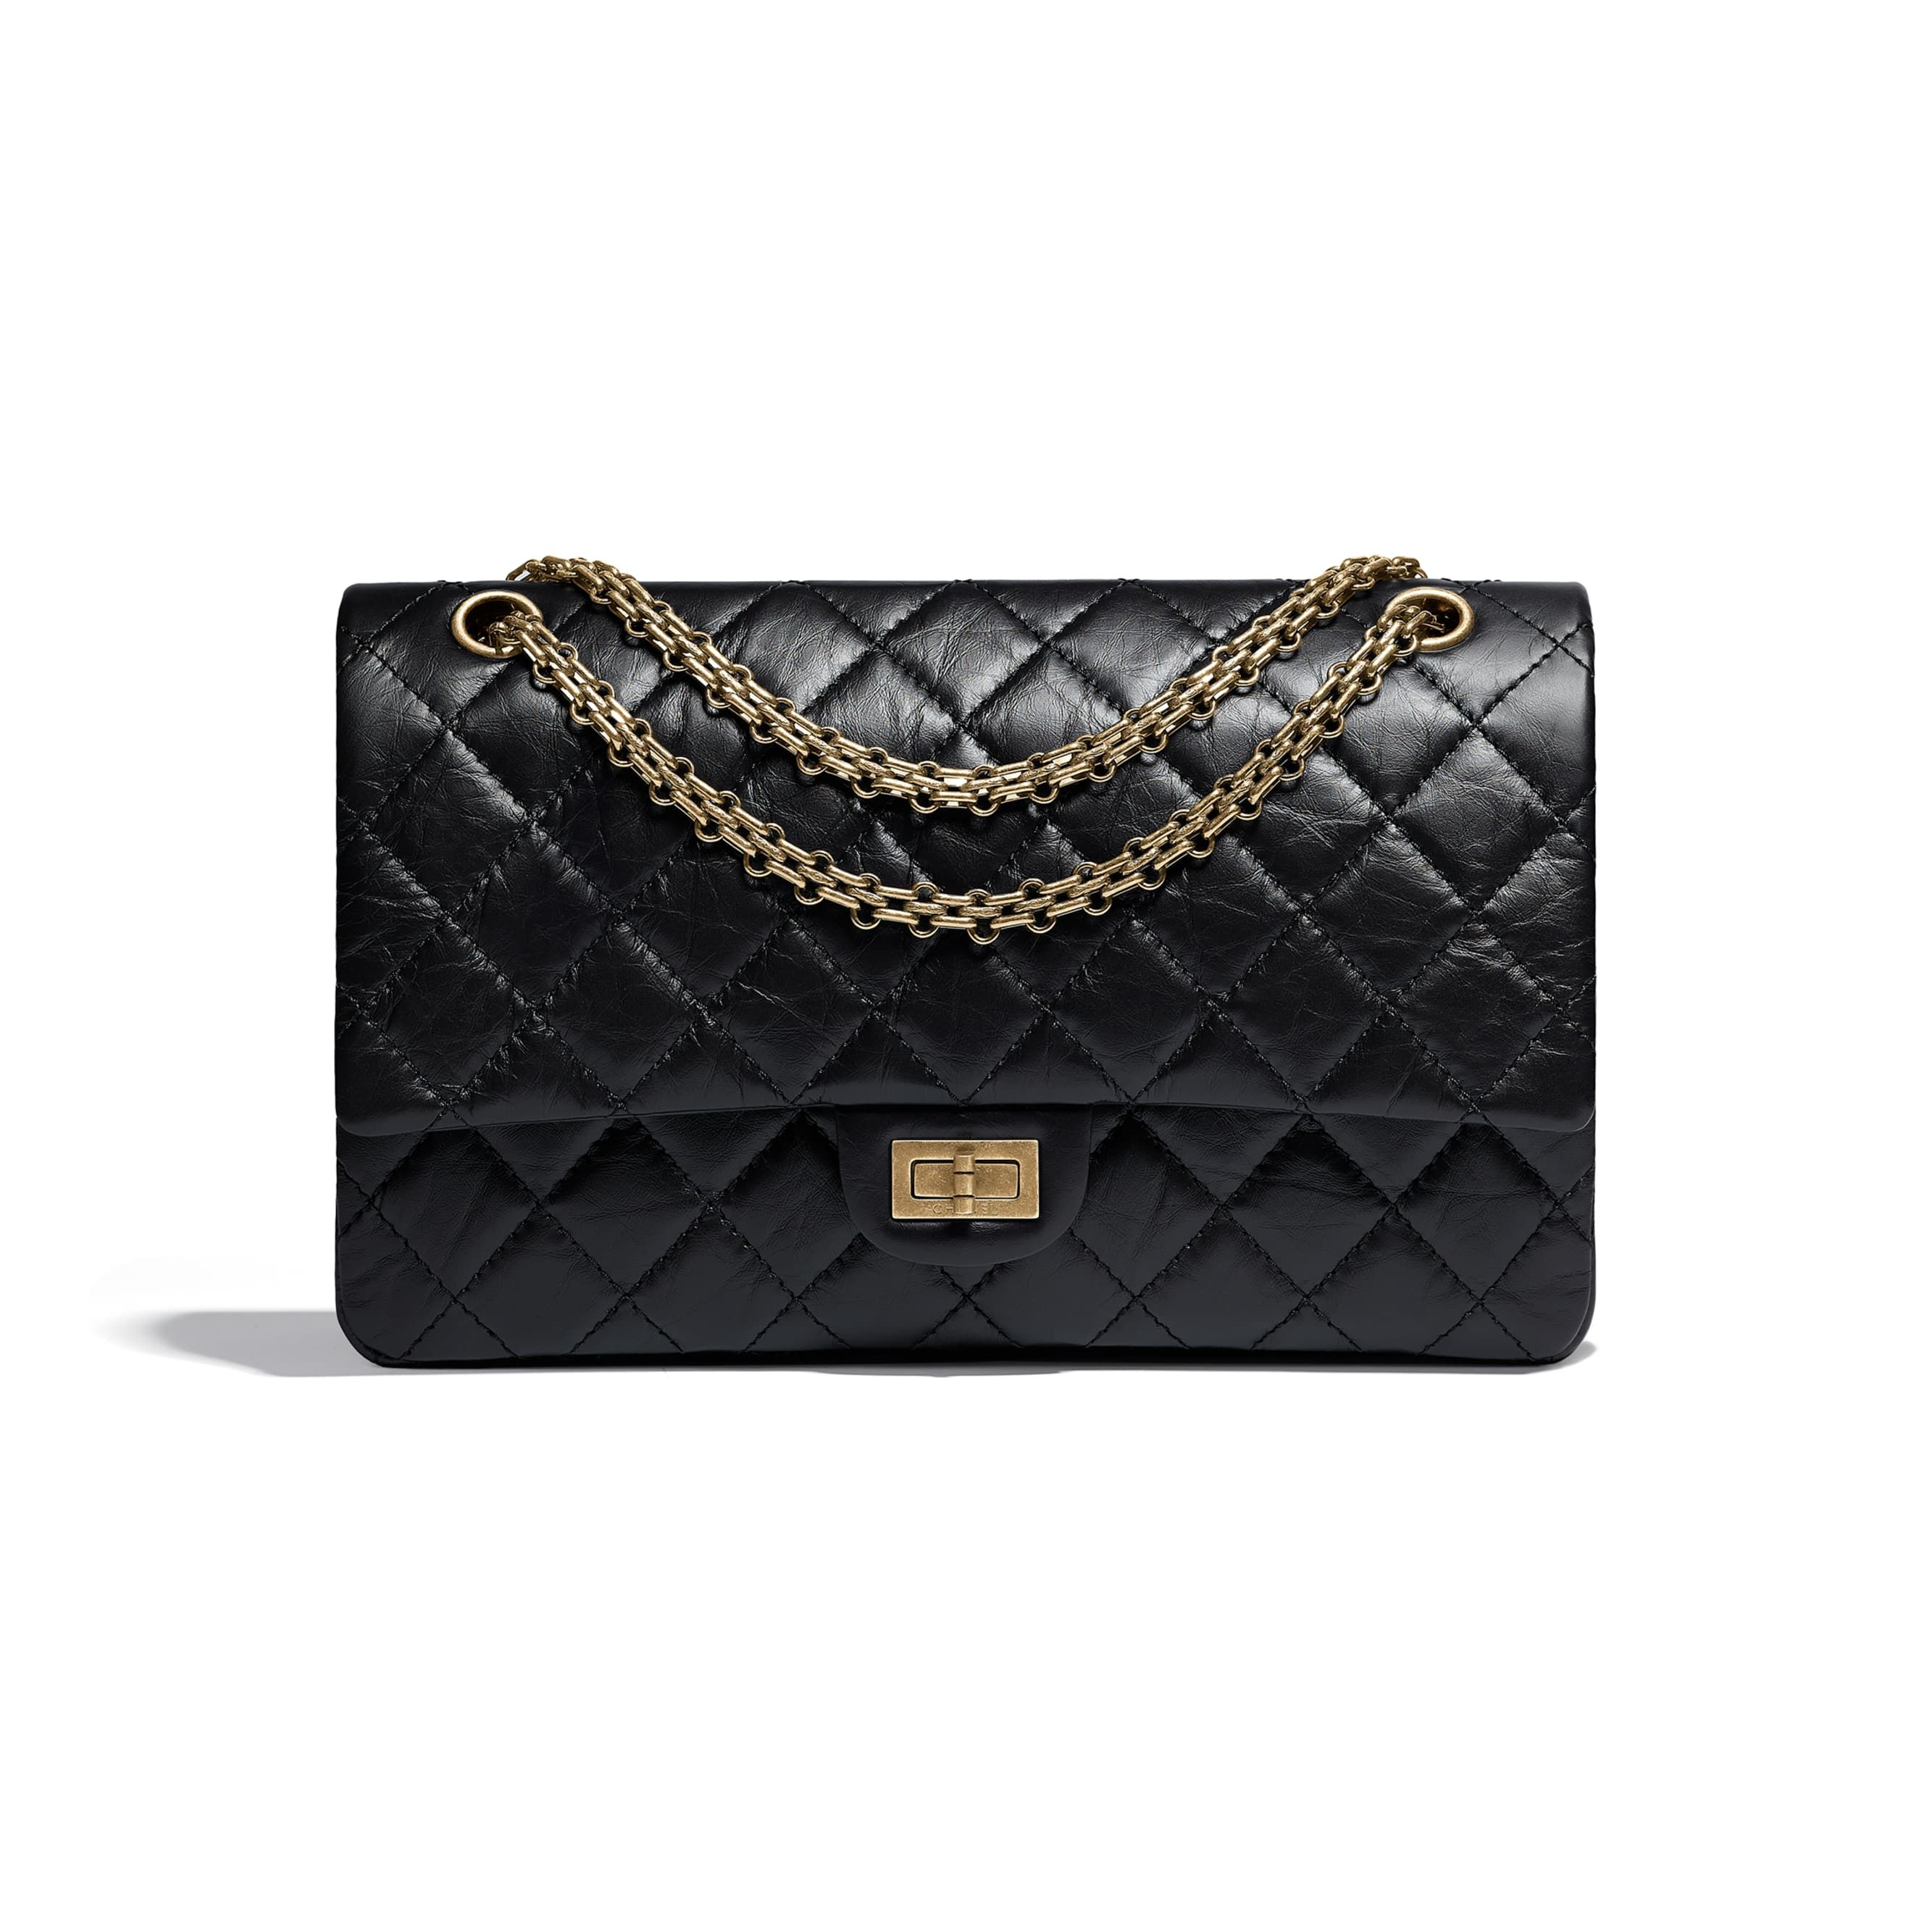 dbccff274f1d Chanel Reissue (227) 2.55 Flap Bag with Ruthenium Hardware | Handbags/Wallets  I Love | Chanel fashion, Fashion handbags, Chanel reissue